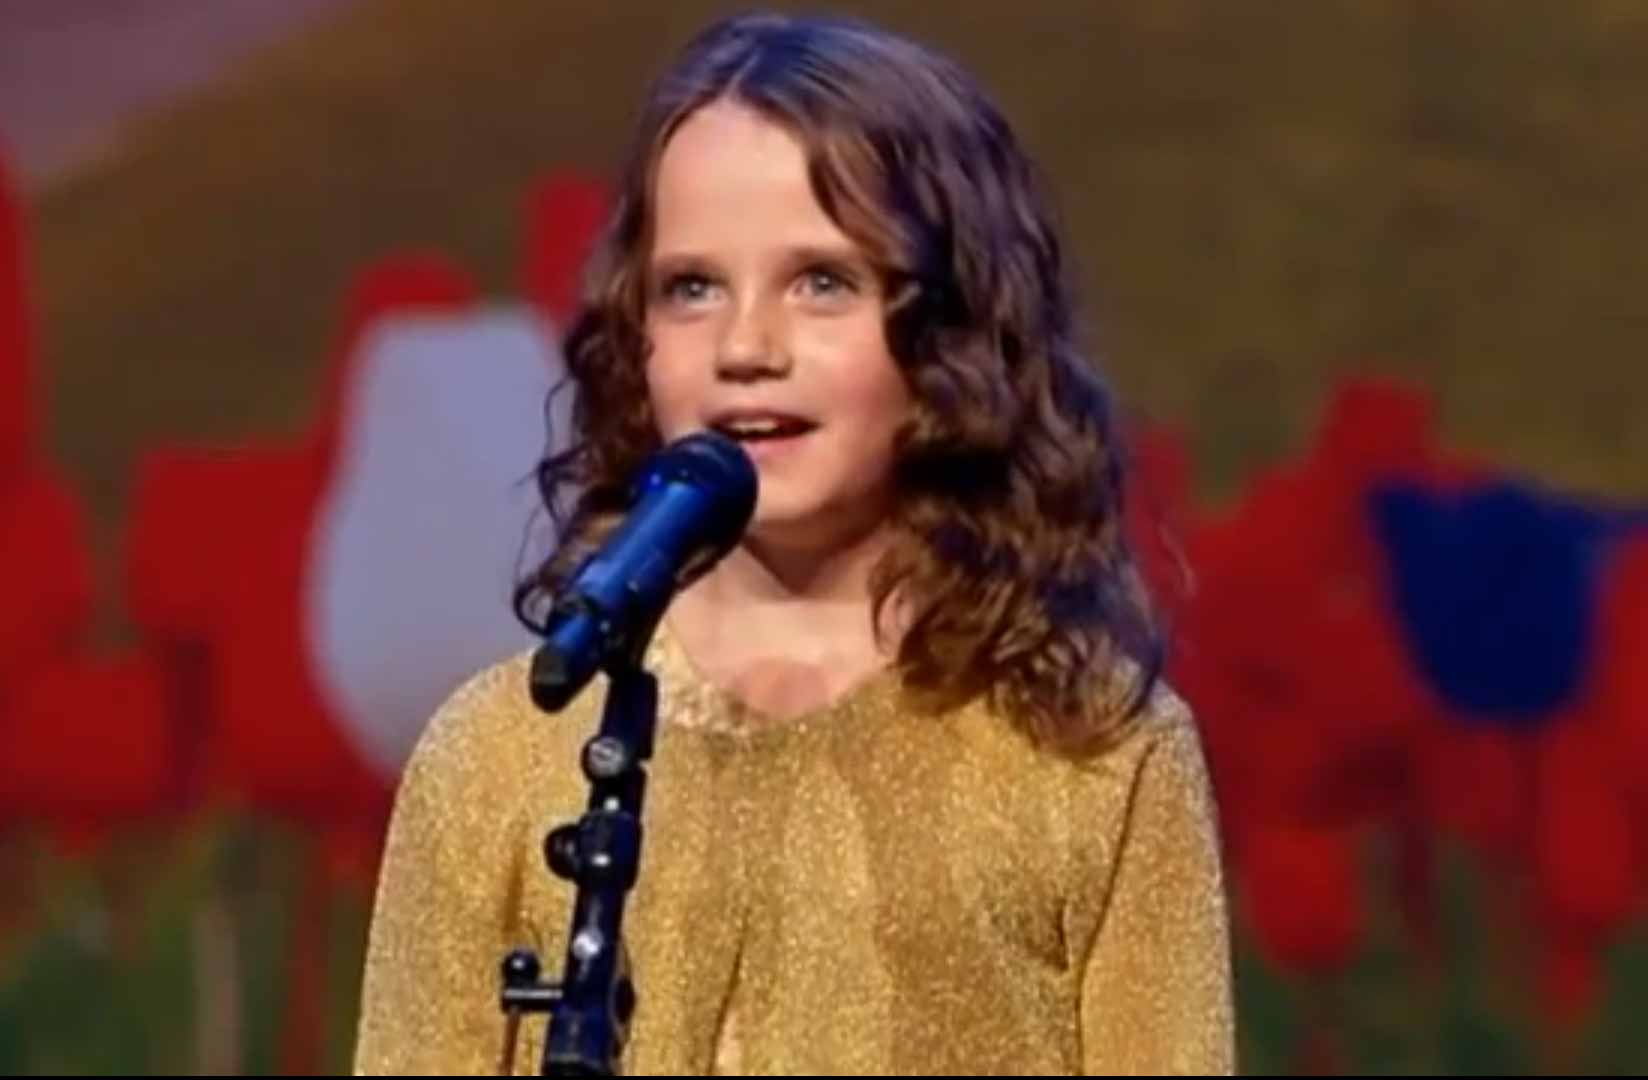 9-Year-Old Girl Sings Opera on Holland's Got Talent